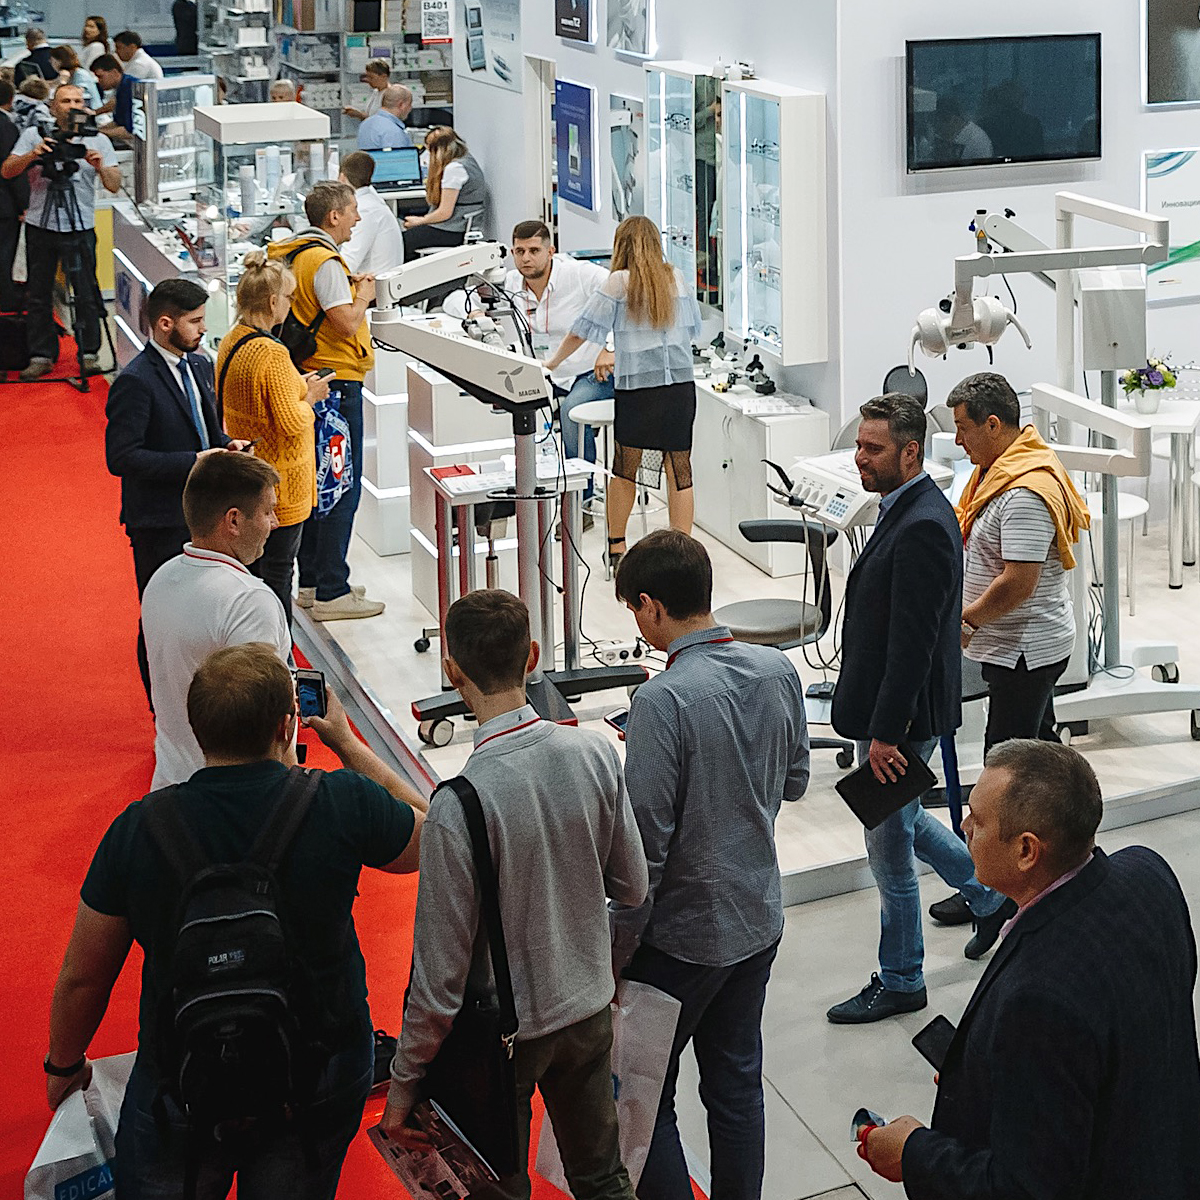 The largest regional dental exhibition in Russia